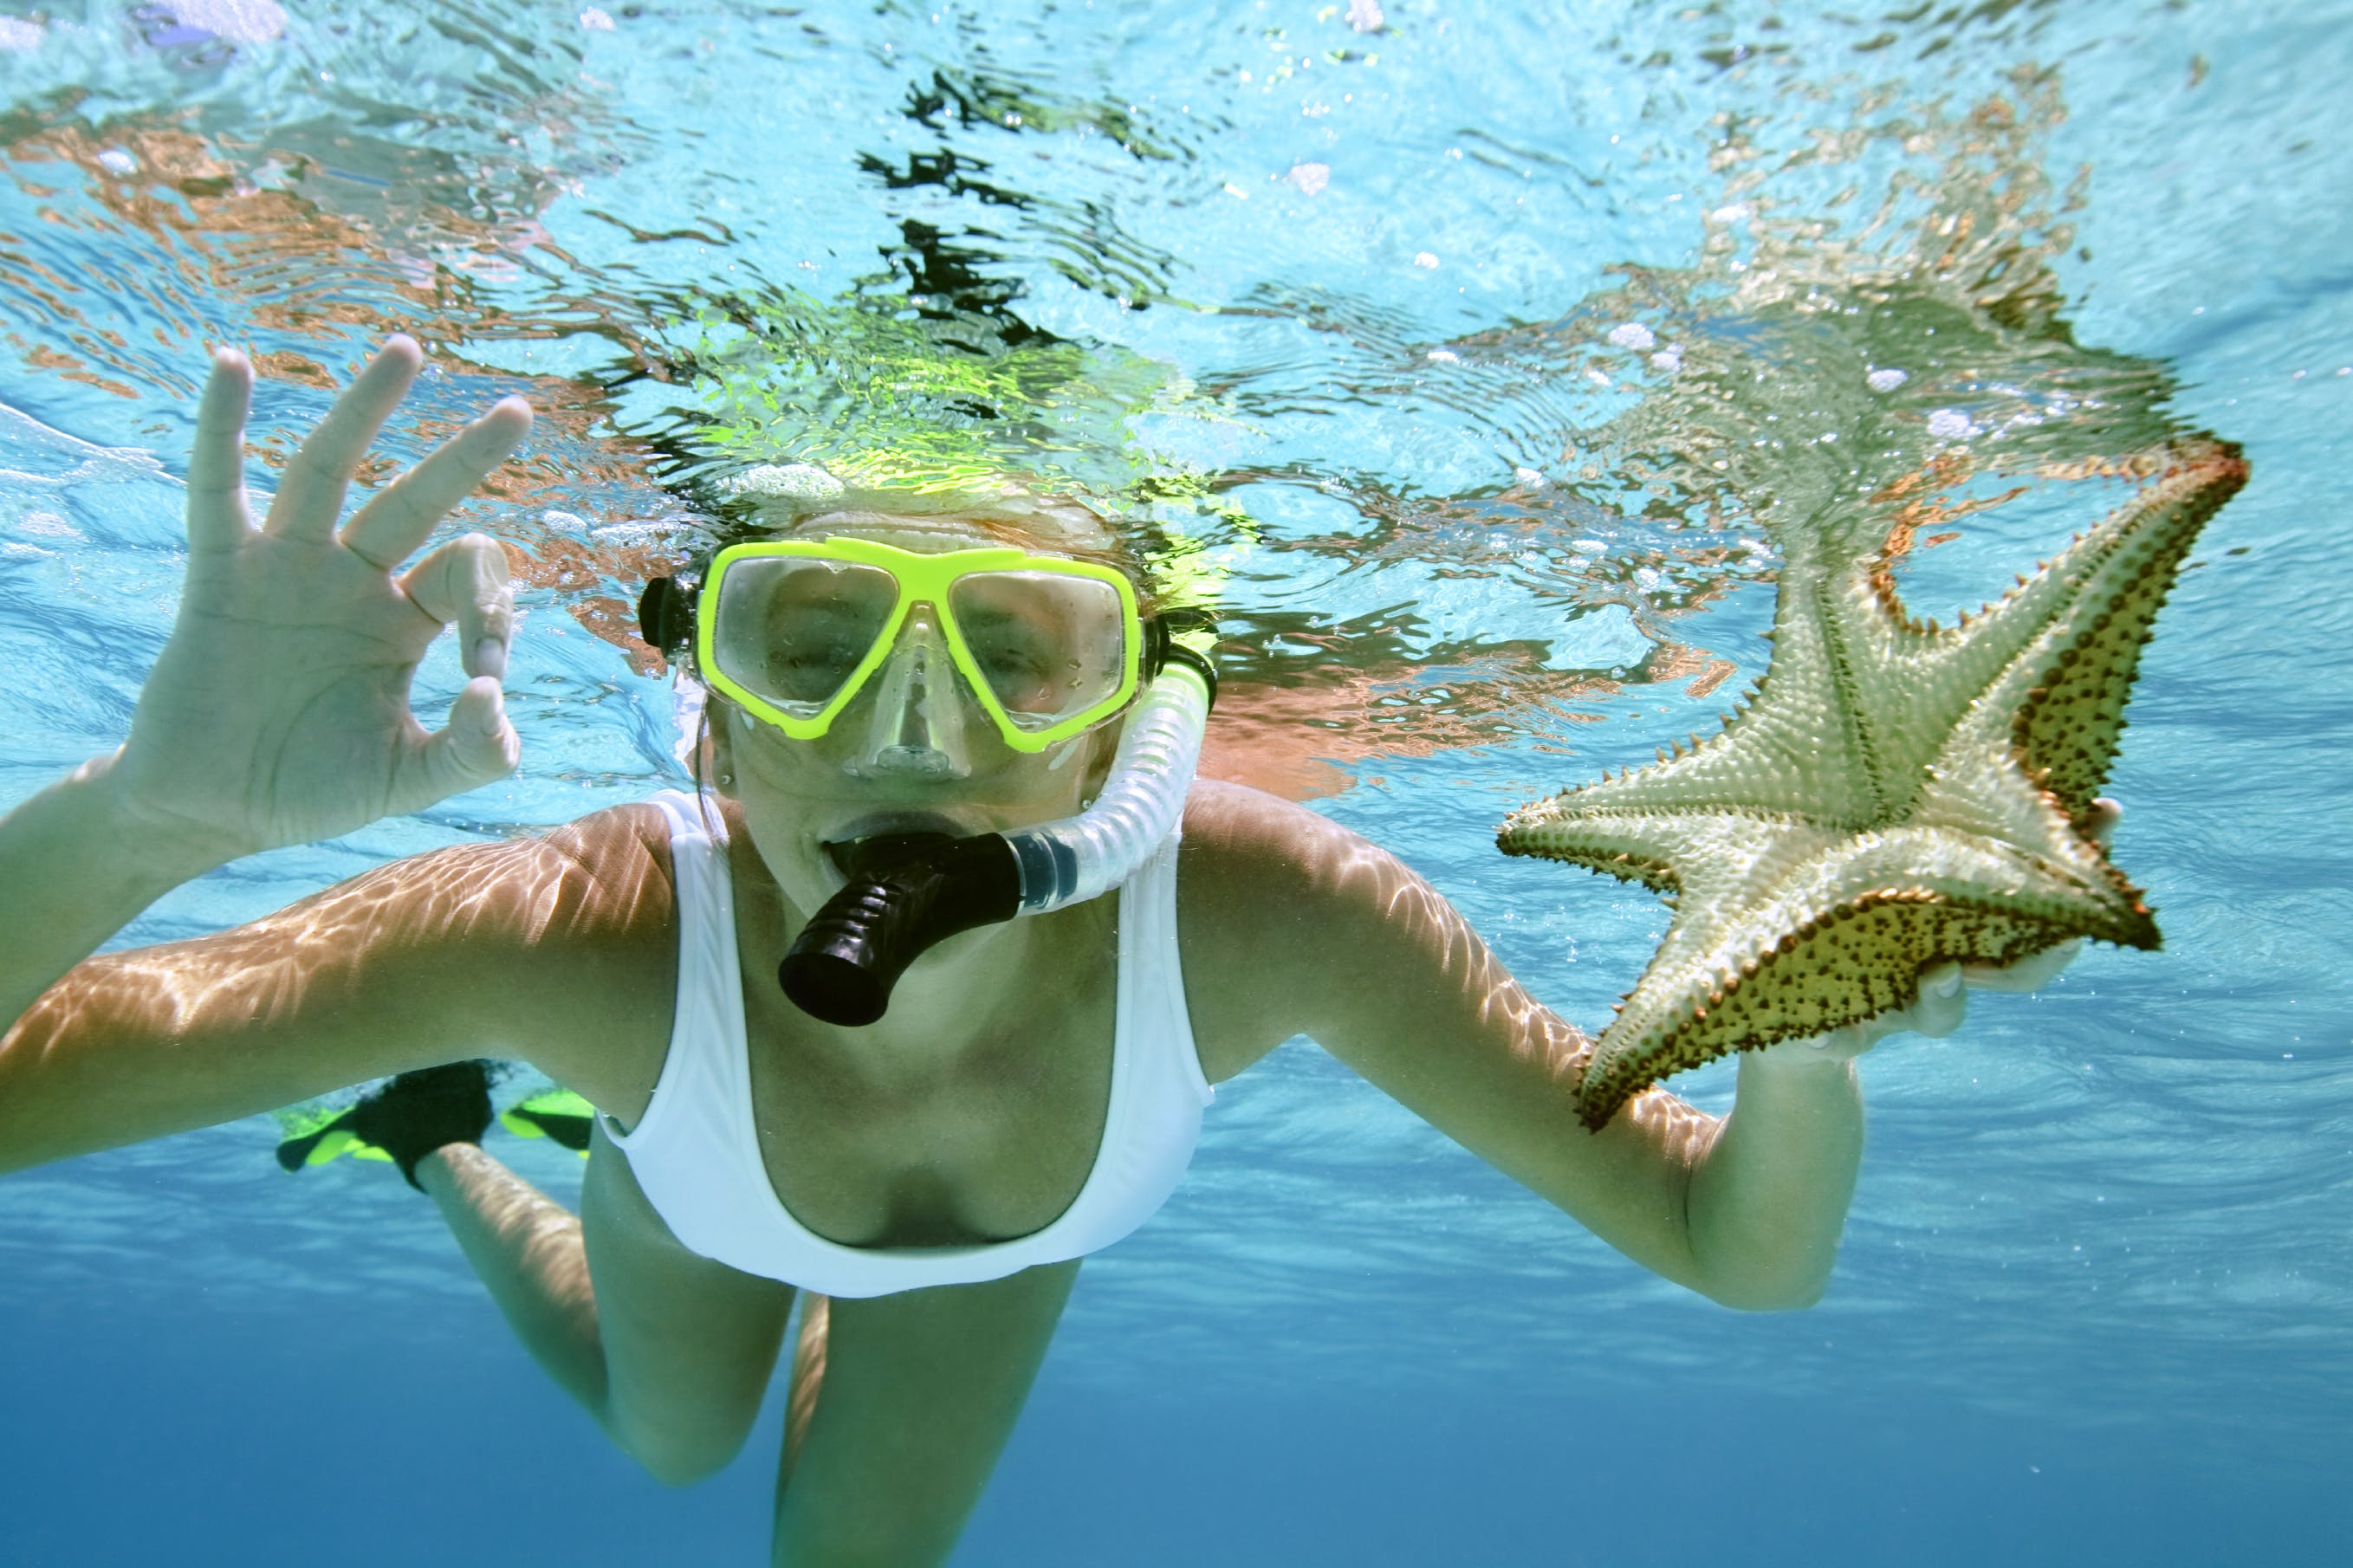 Swim & snorkel around Erakor Island and see what you discover